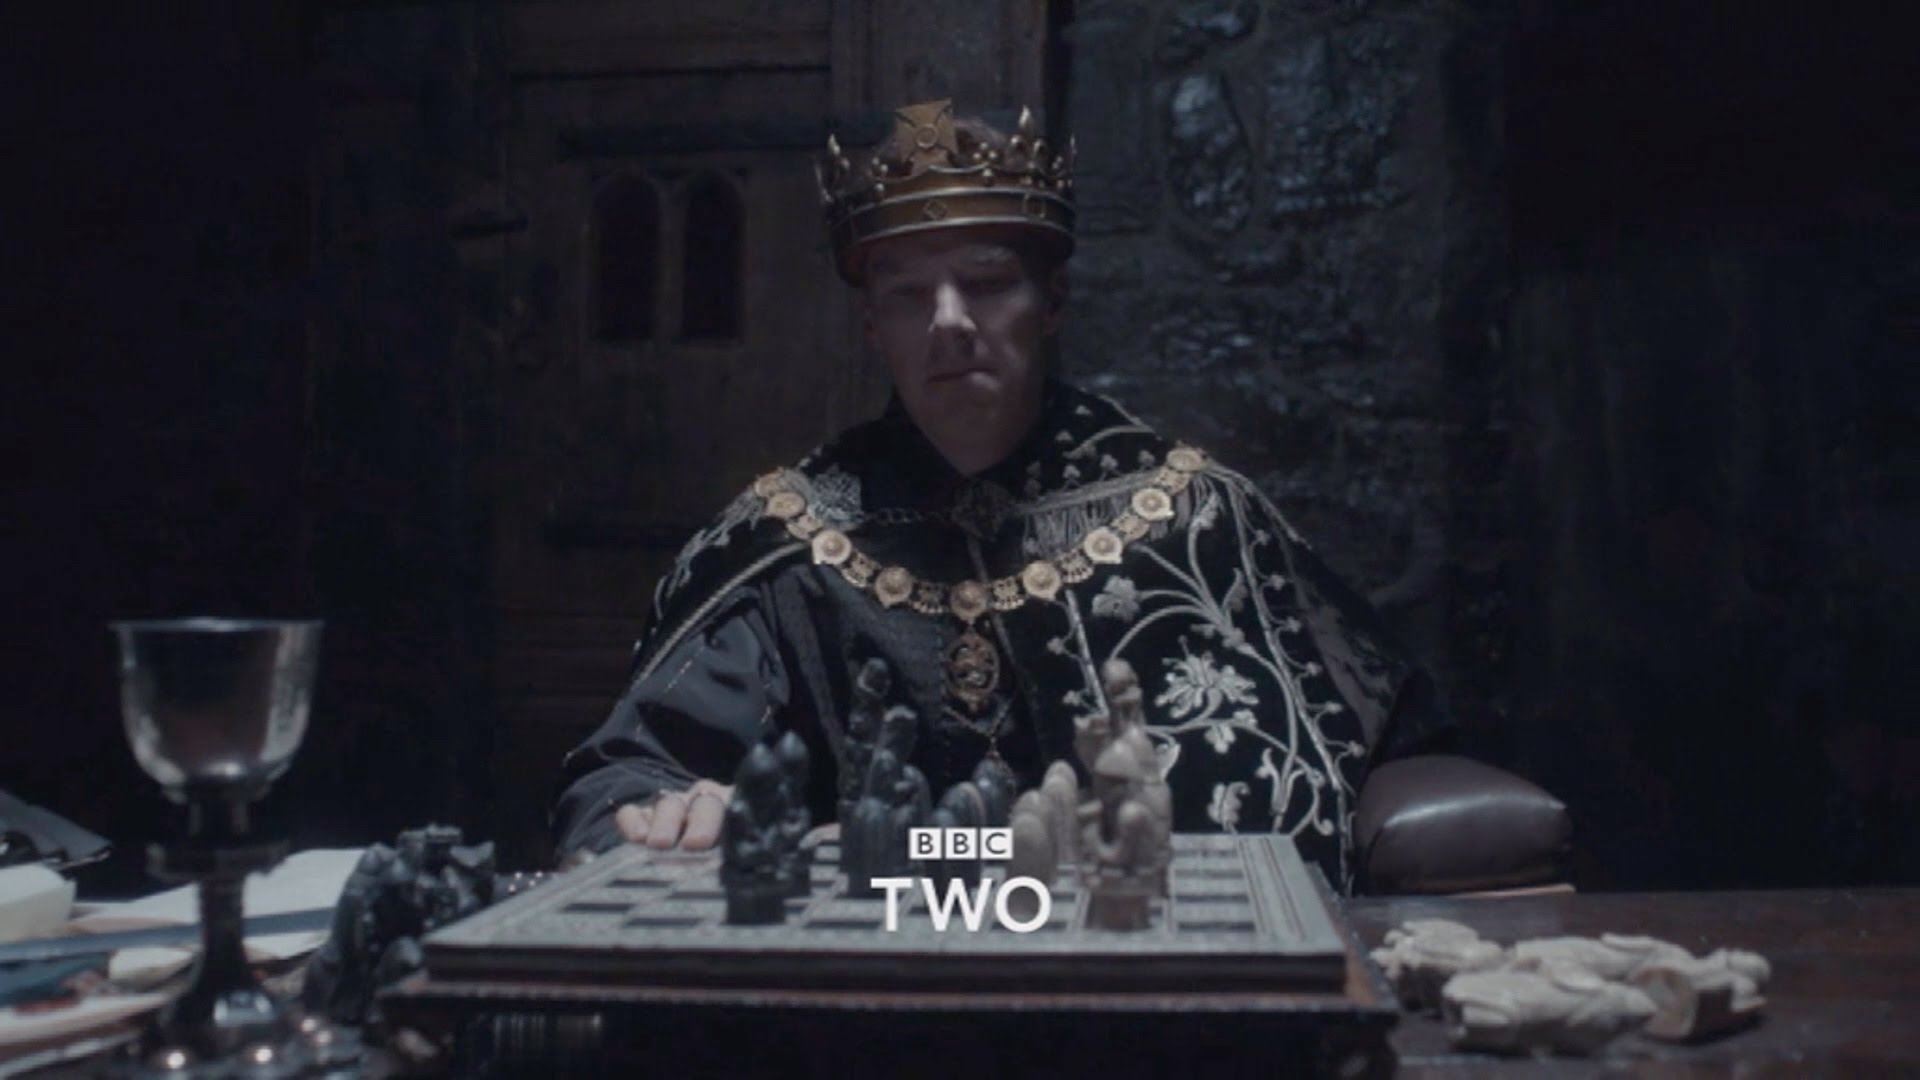 The Hollow Crown: War of the Roses